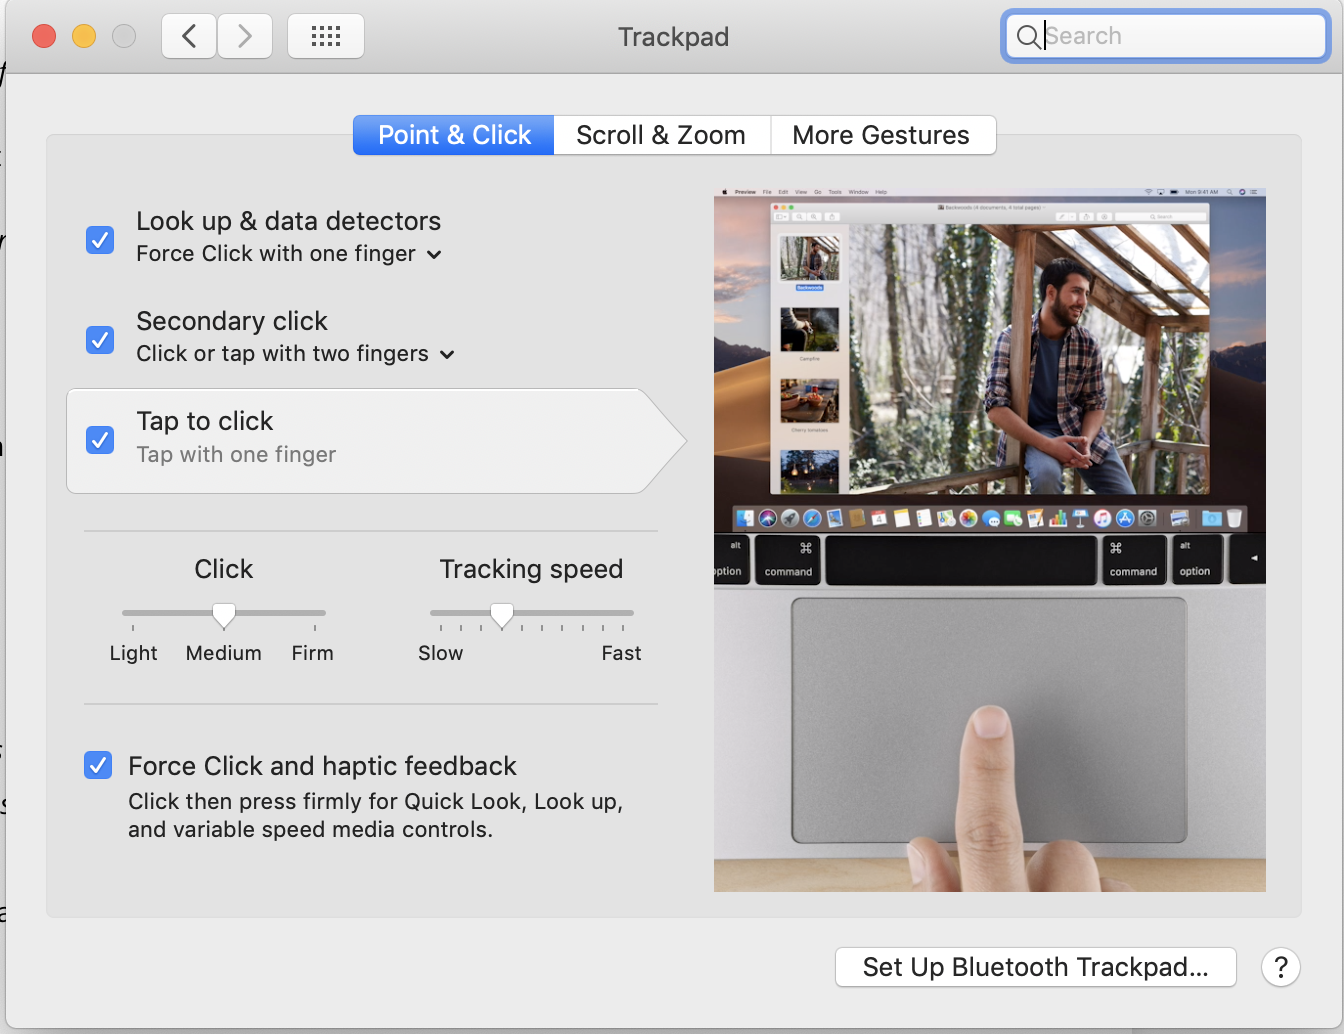 Configure Trackpad: Tap to Click